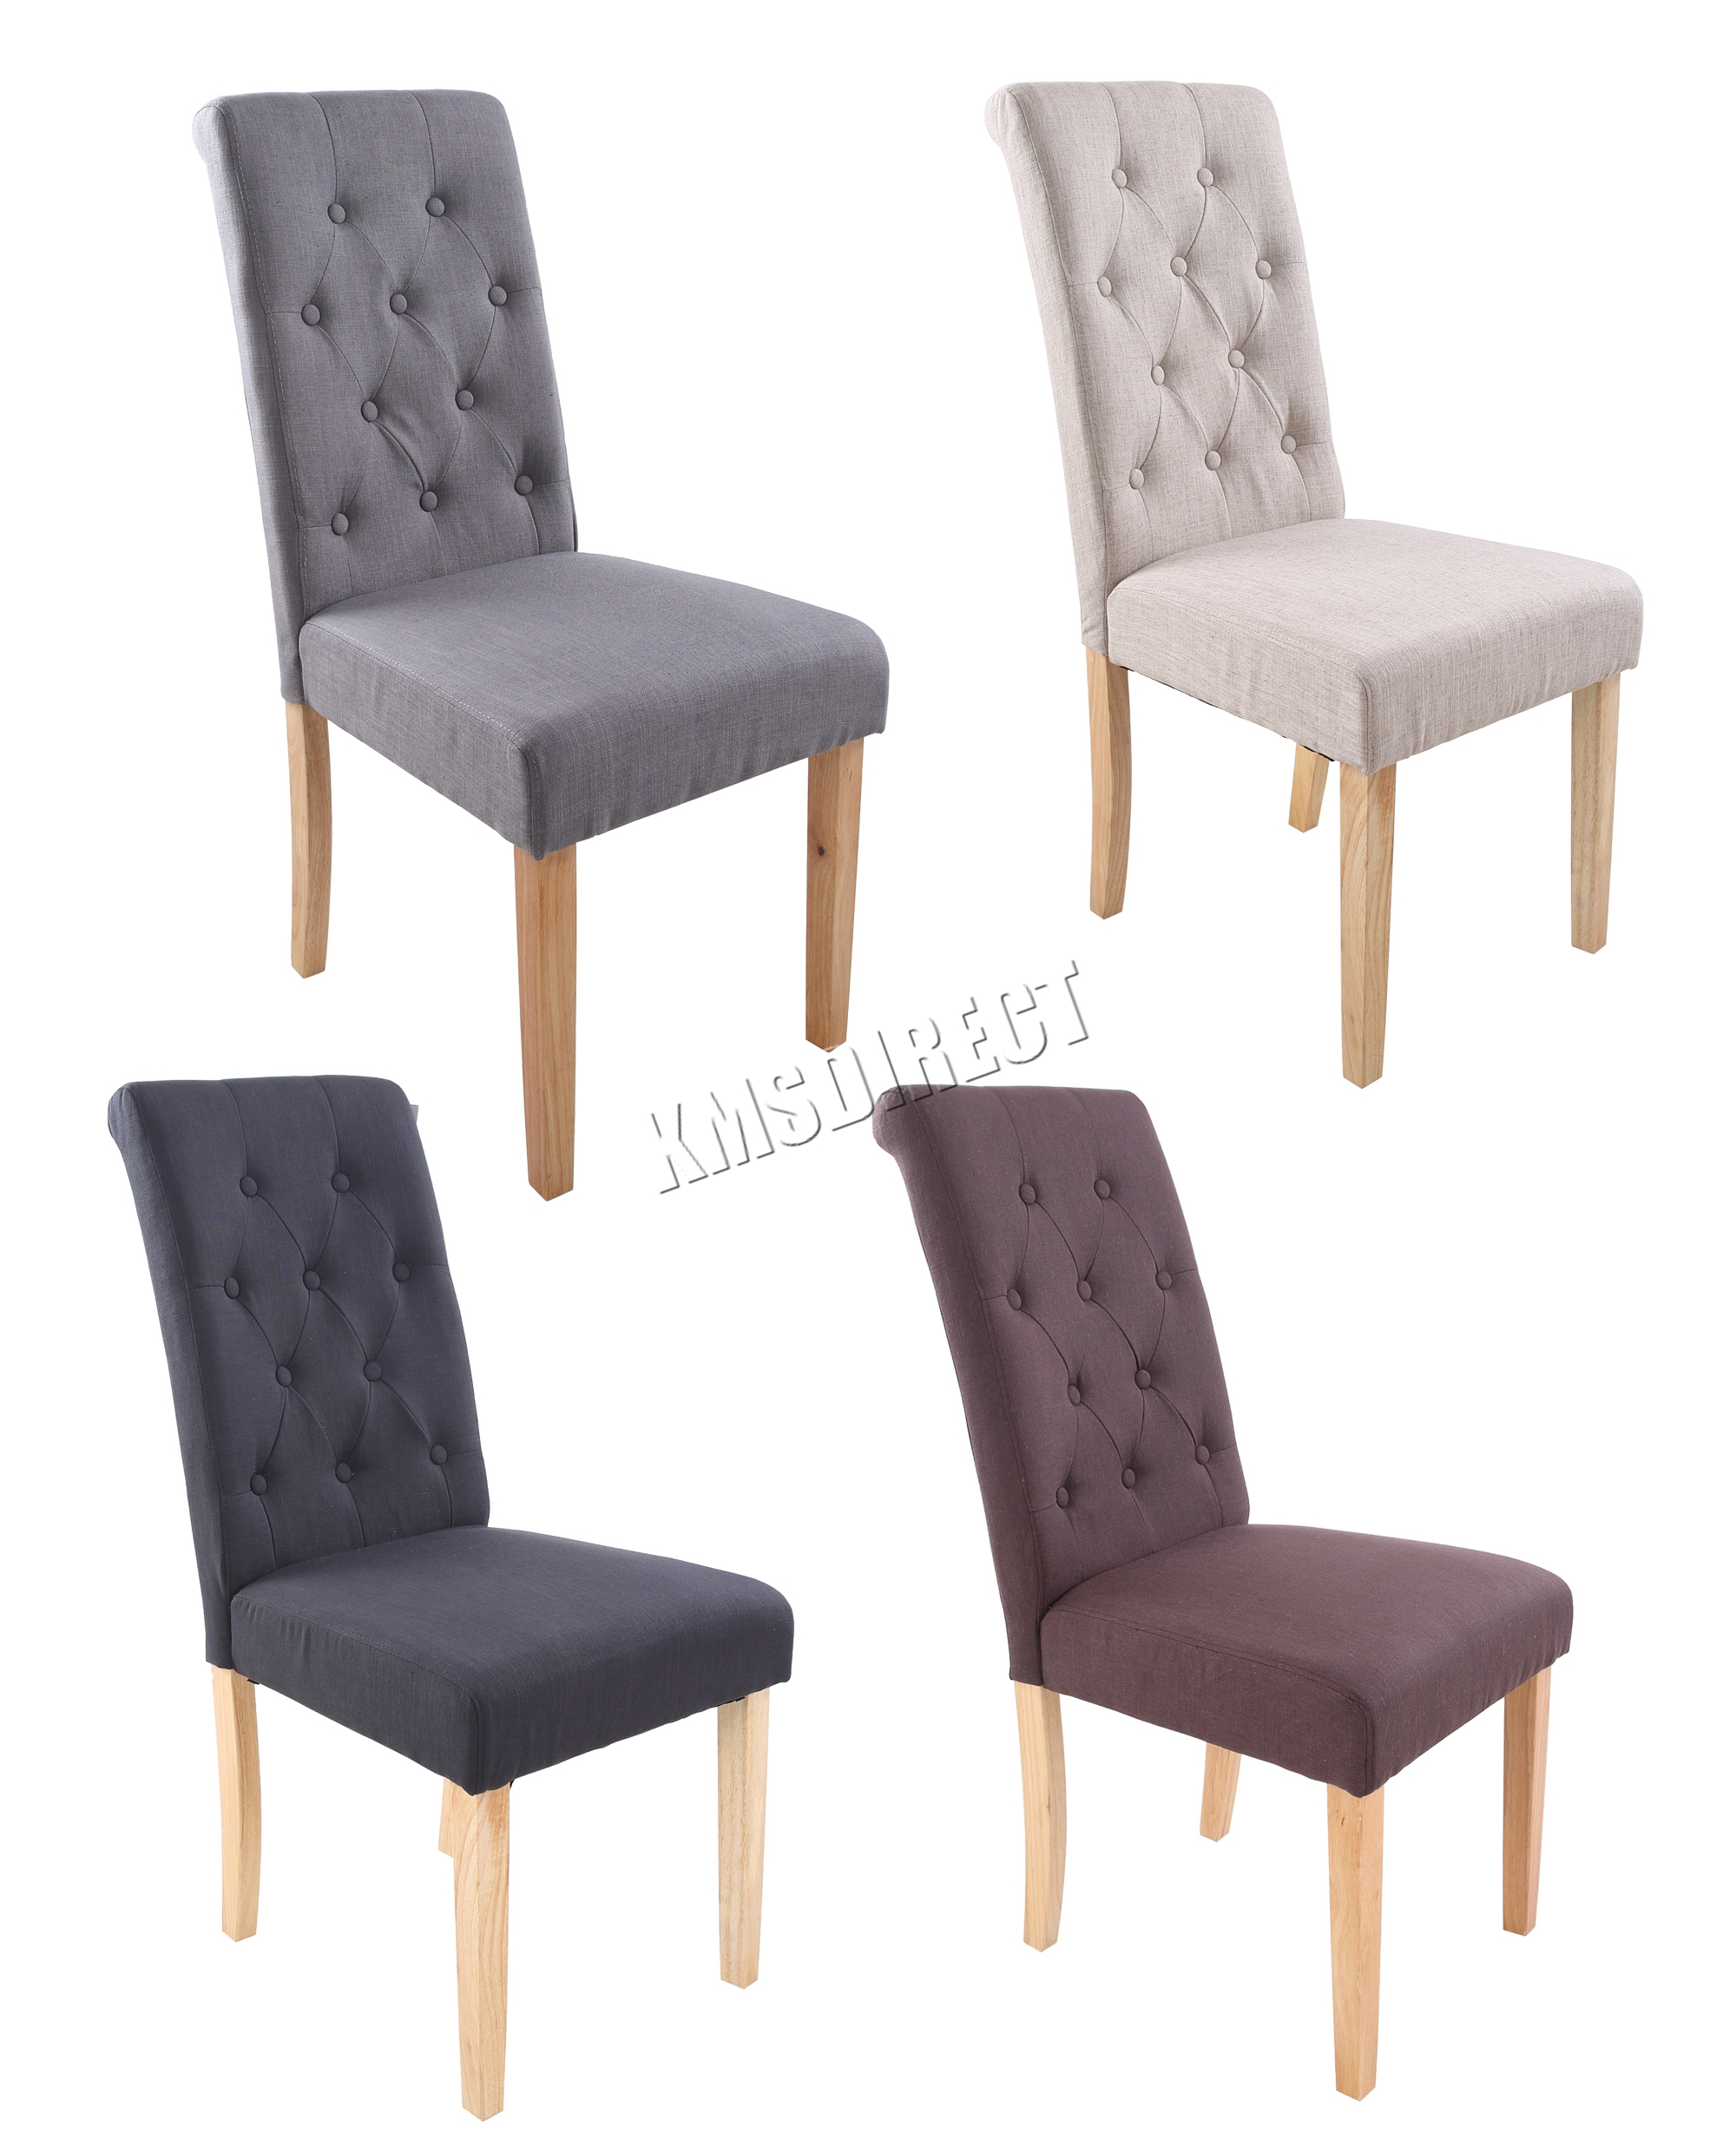 wellness by design chair uk high upside down foxhunter linen fabric dining chairs scroll back